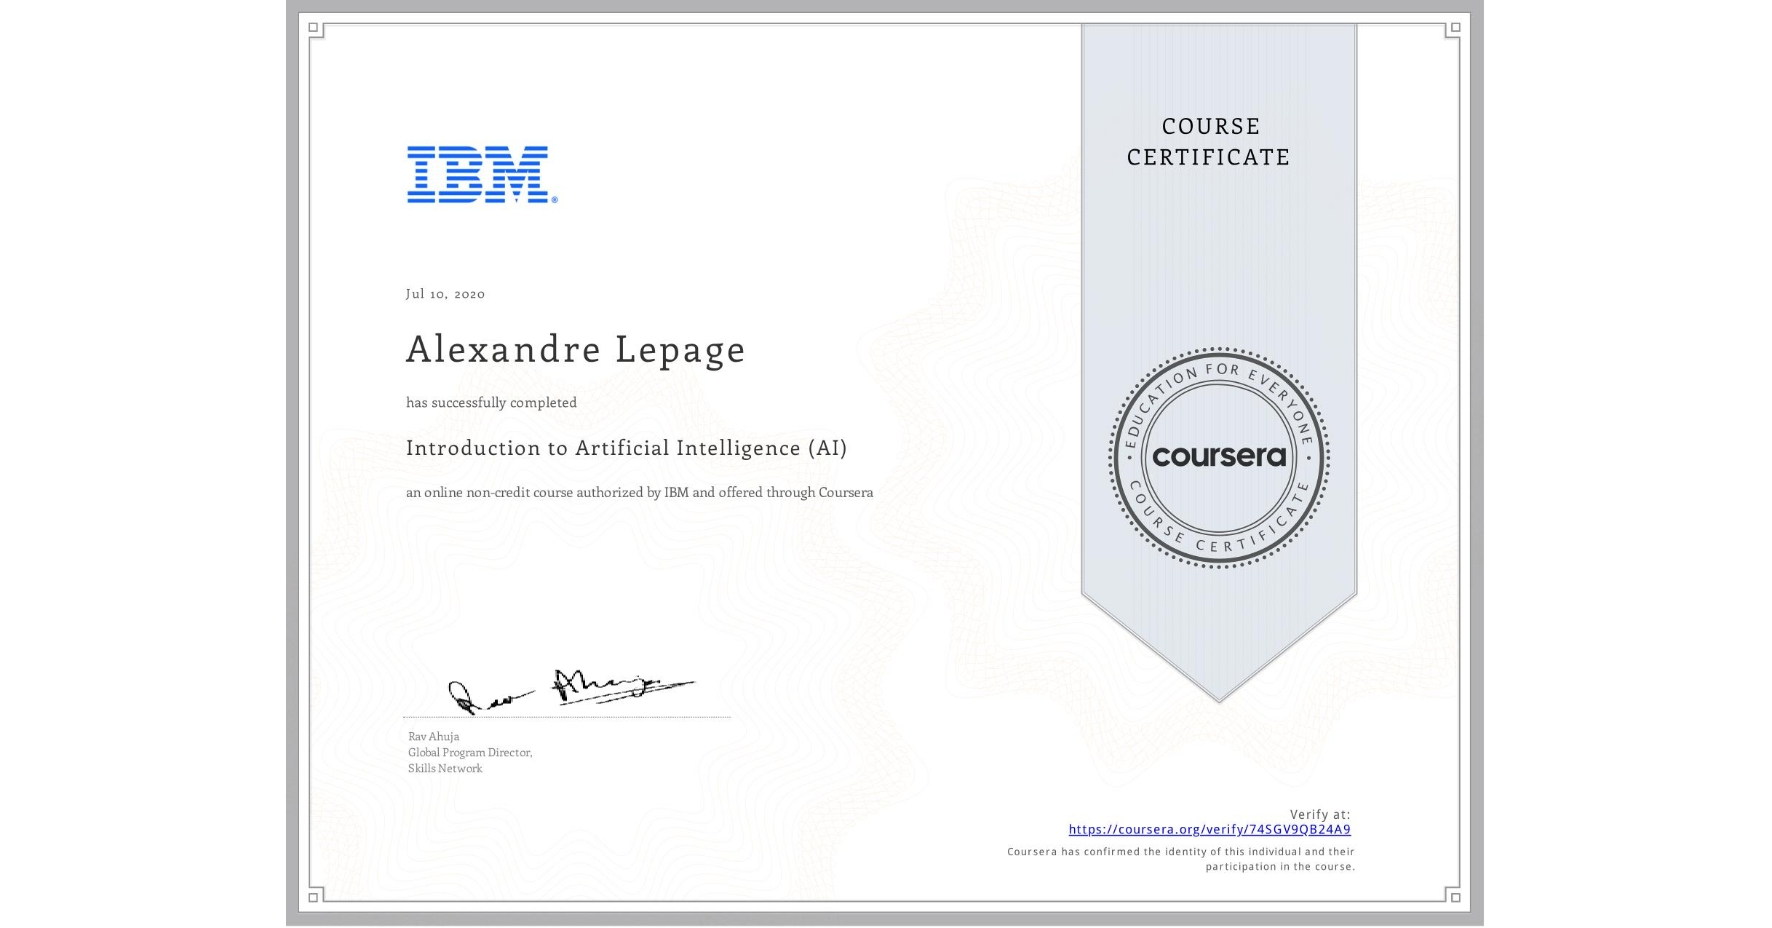 View certificate for Alexandre Lepage, Introduction to Artificial Intelligence (AI), an online non-credit course authorized by IBM and offered through Coursera